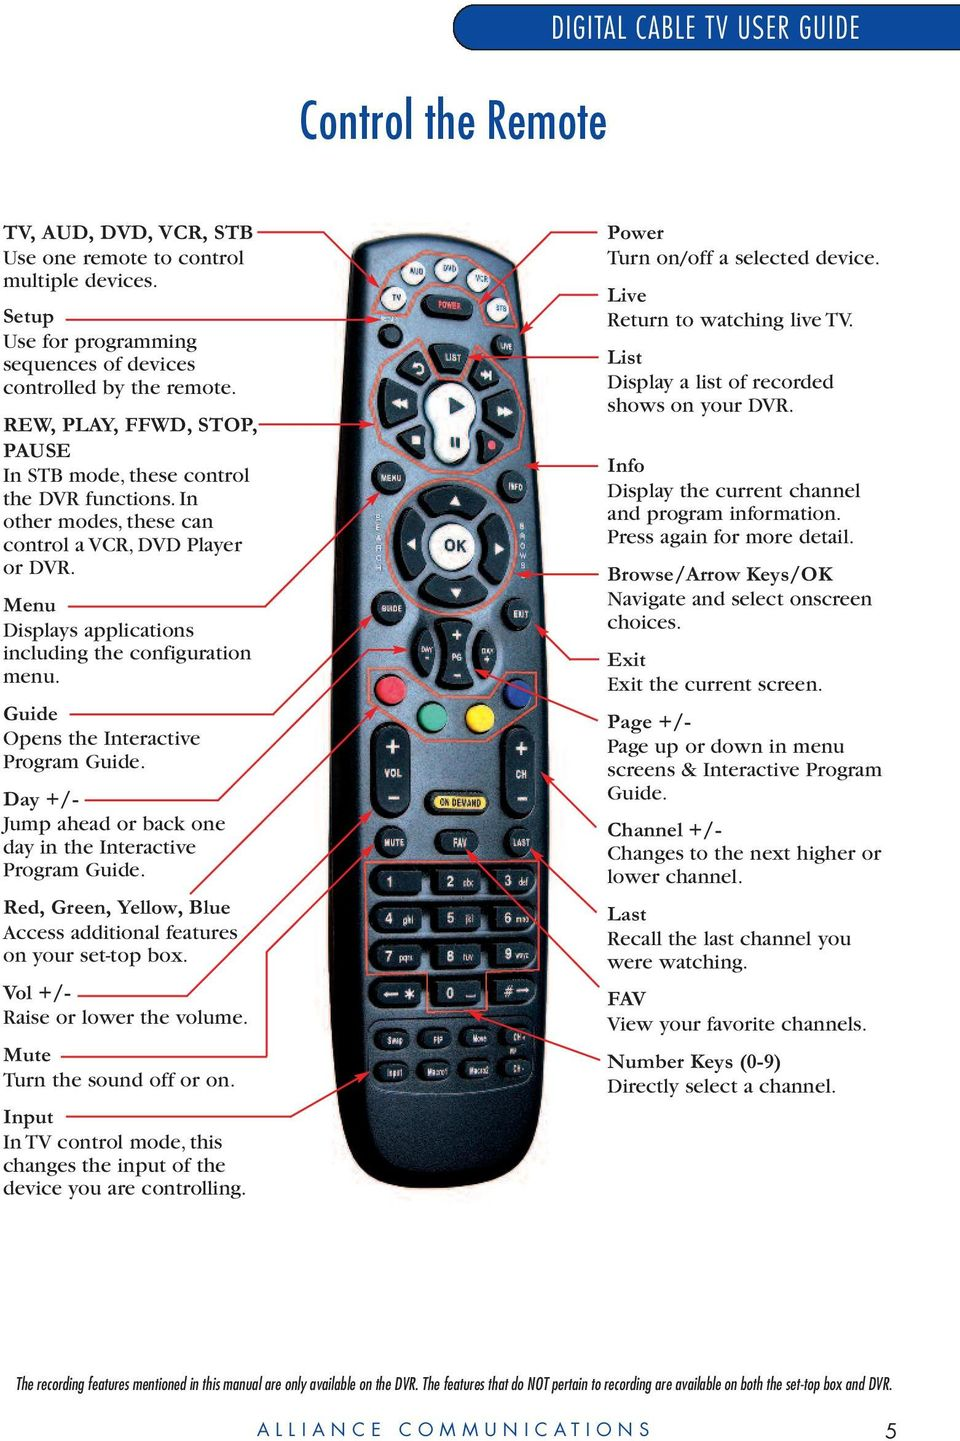 Guide Opens the Interactive Program Guide. Day +/- Jump ahead or back one day in the Interactive Program Guide. Red, Green, Yellow, Blue Access additional features on your set-top box.